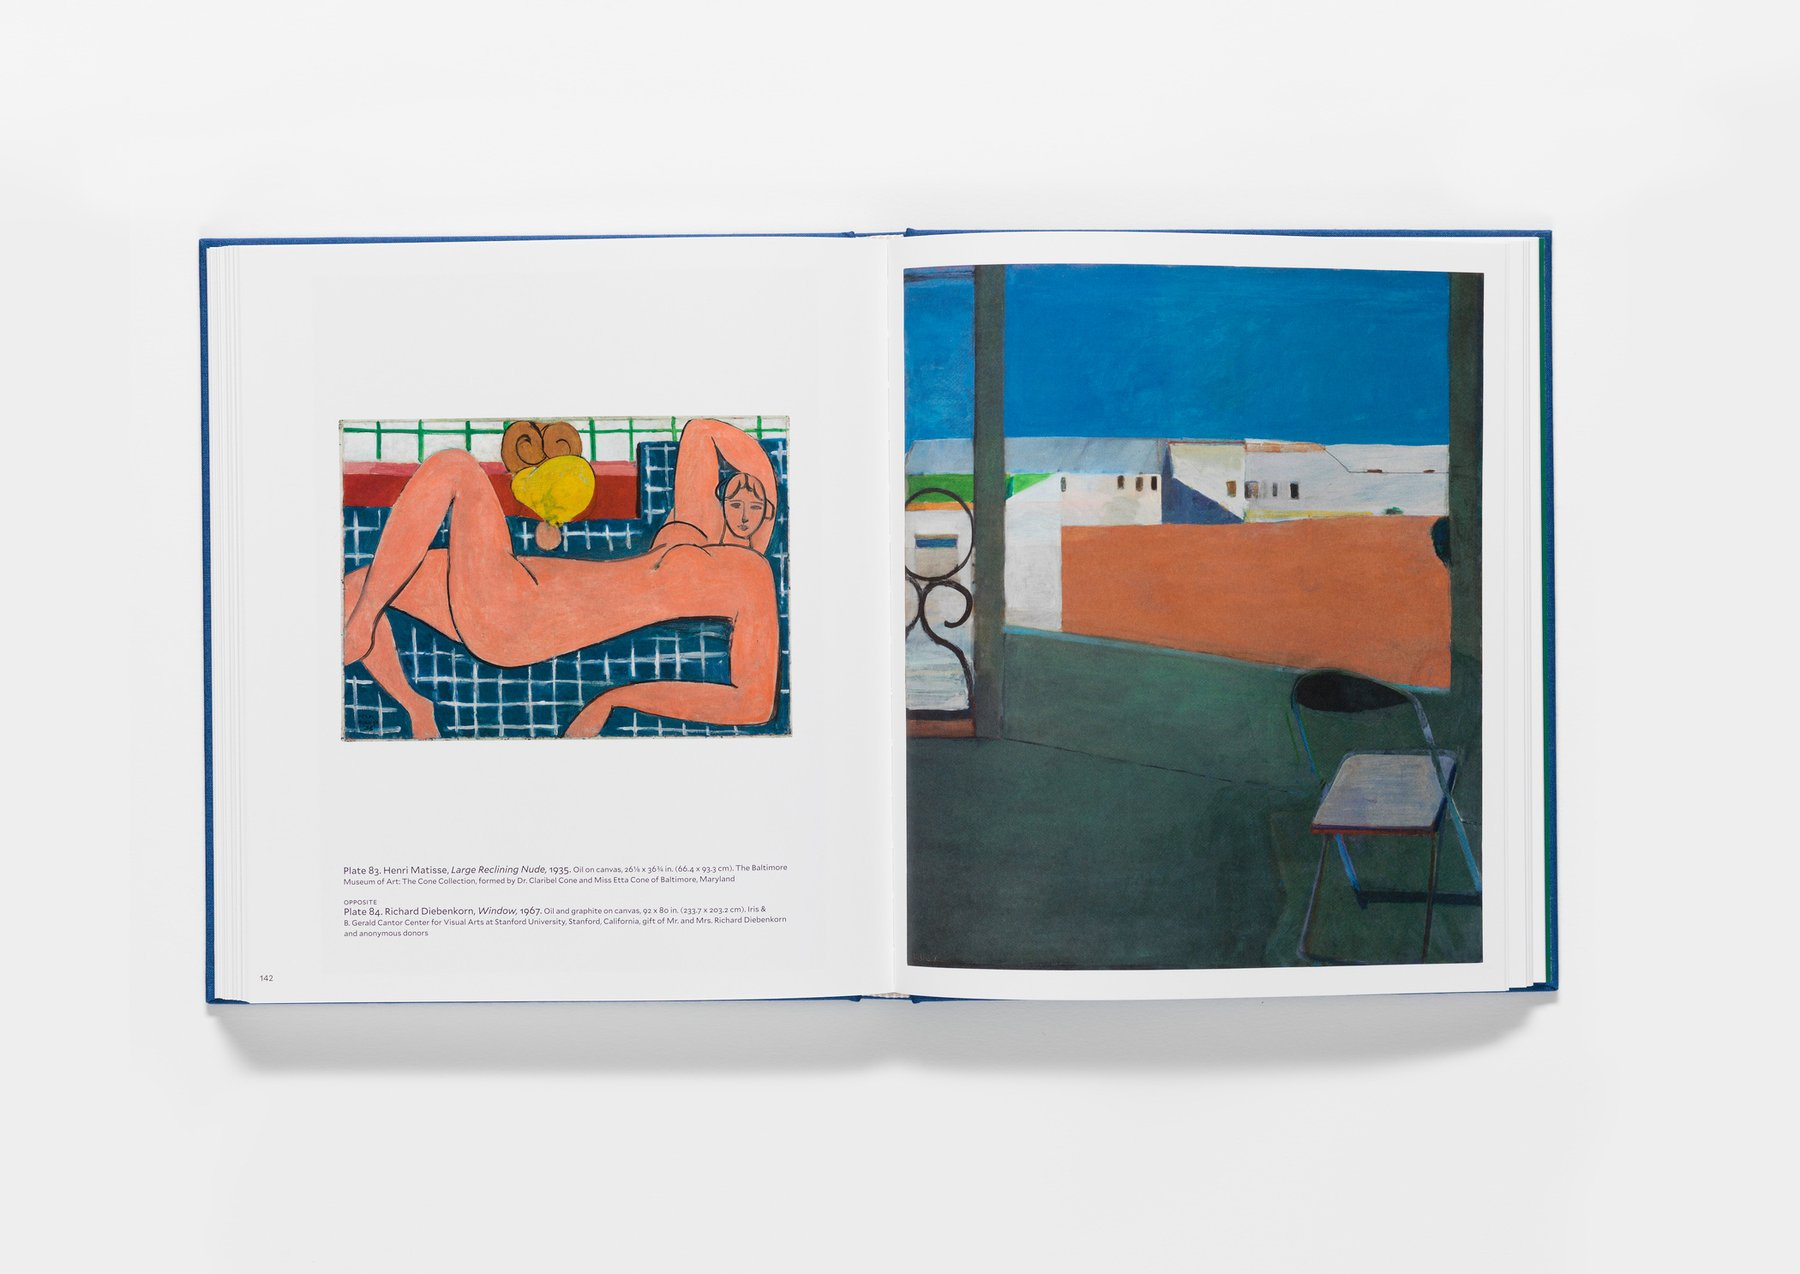 Matisse/Diebenkorn publication pages 142-143